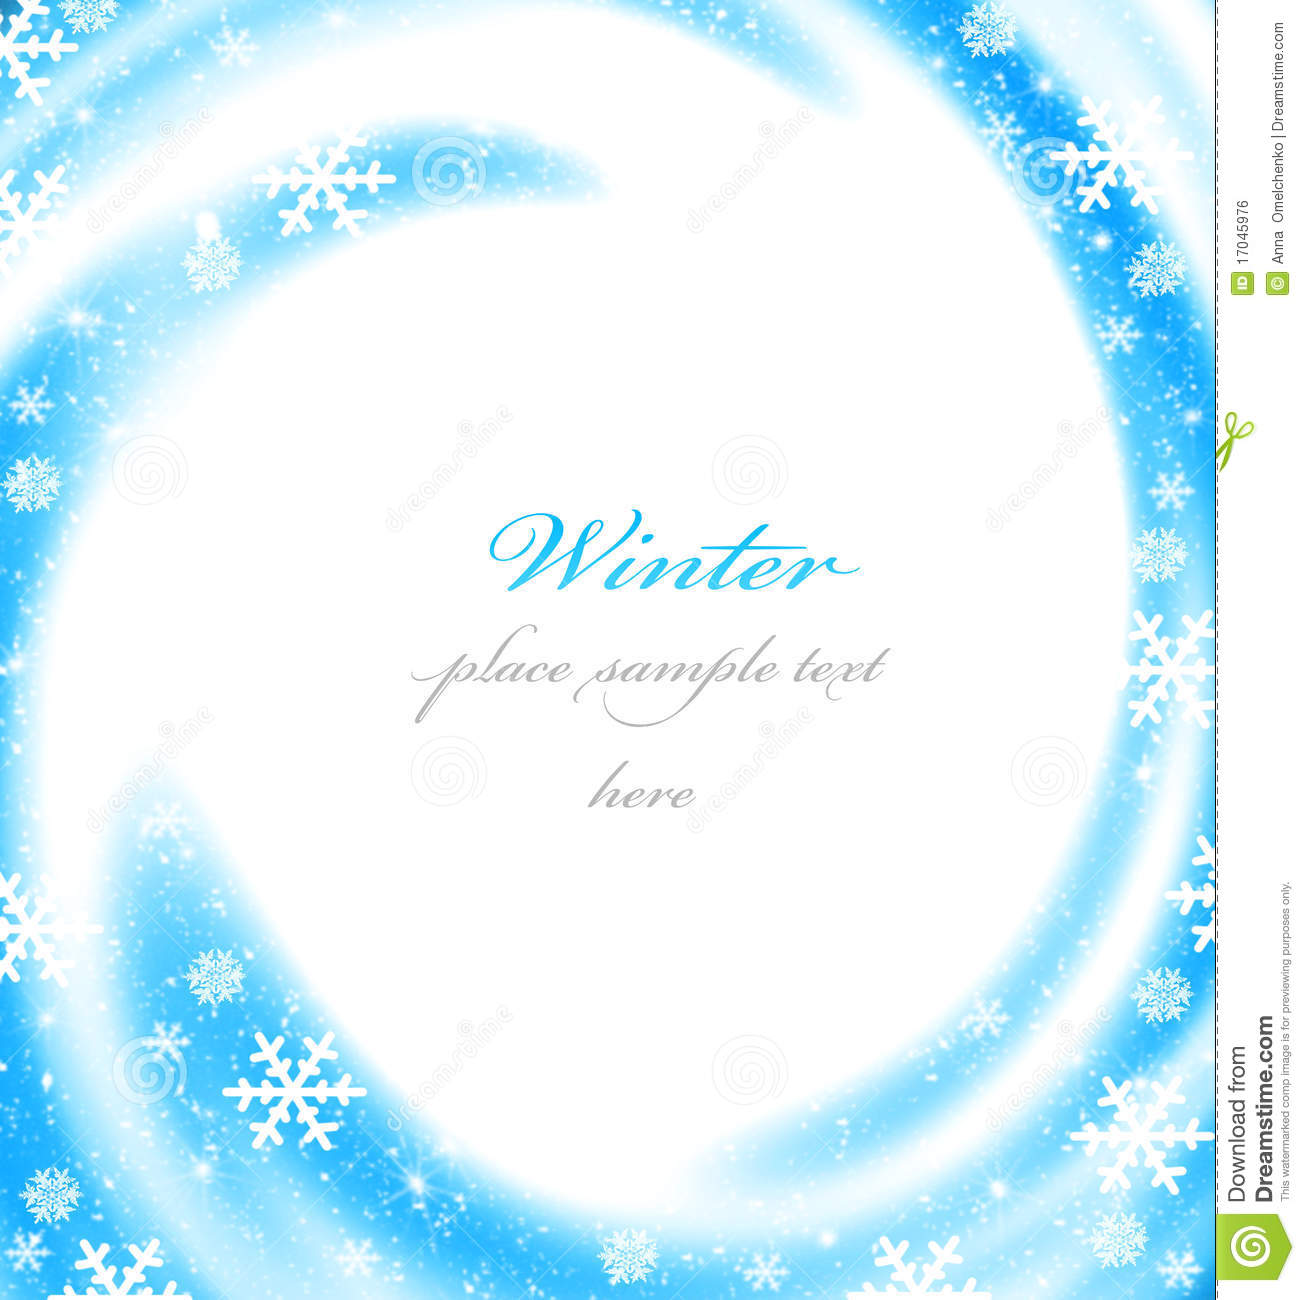 Free Winter Clip Art Borders. Christmas -Free Winter Clip Art Borders. Christmas border card Royalty .-18